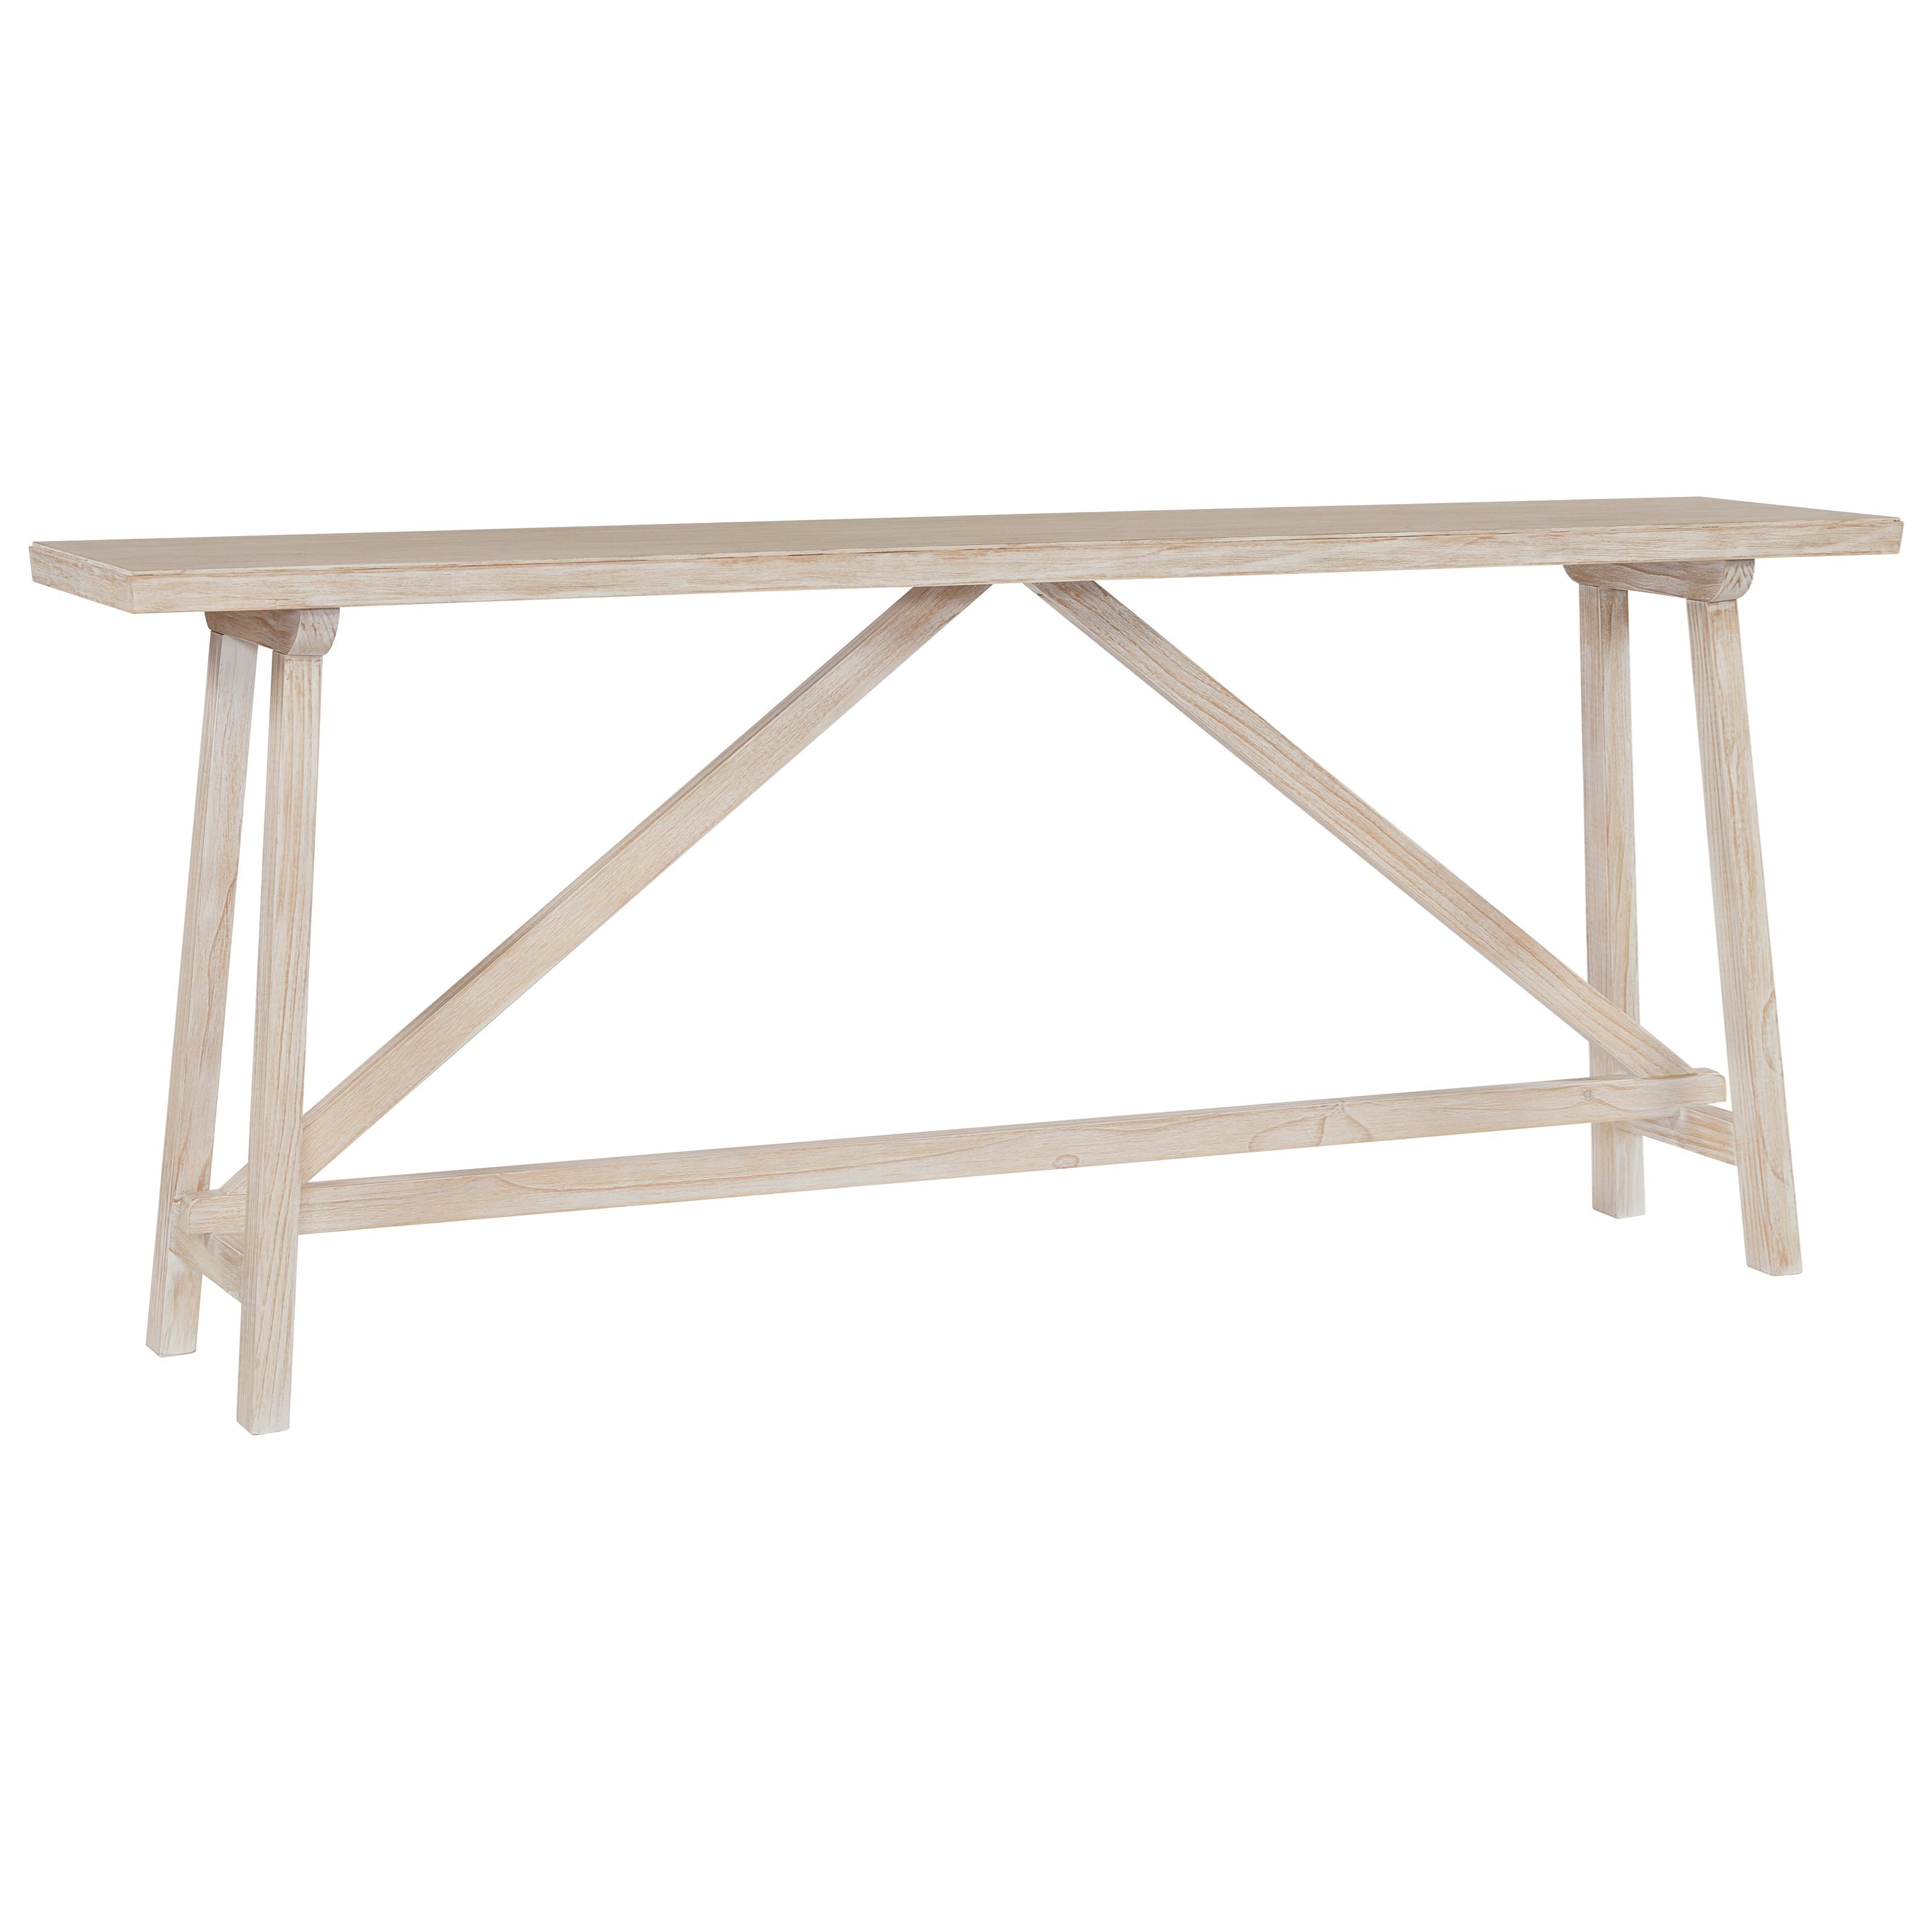 Coastal Living Home - Getaway Console Table by Universal at Baer's Furniture